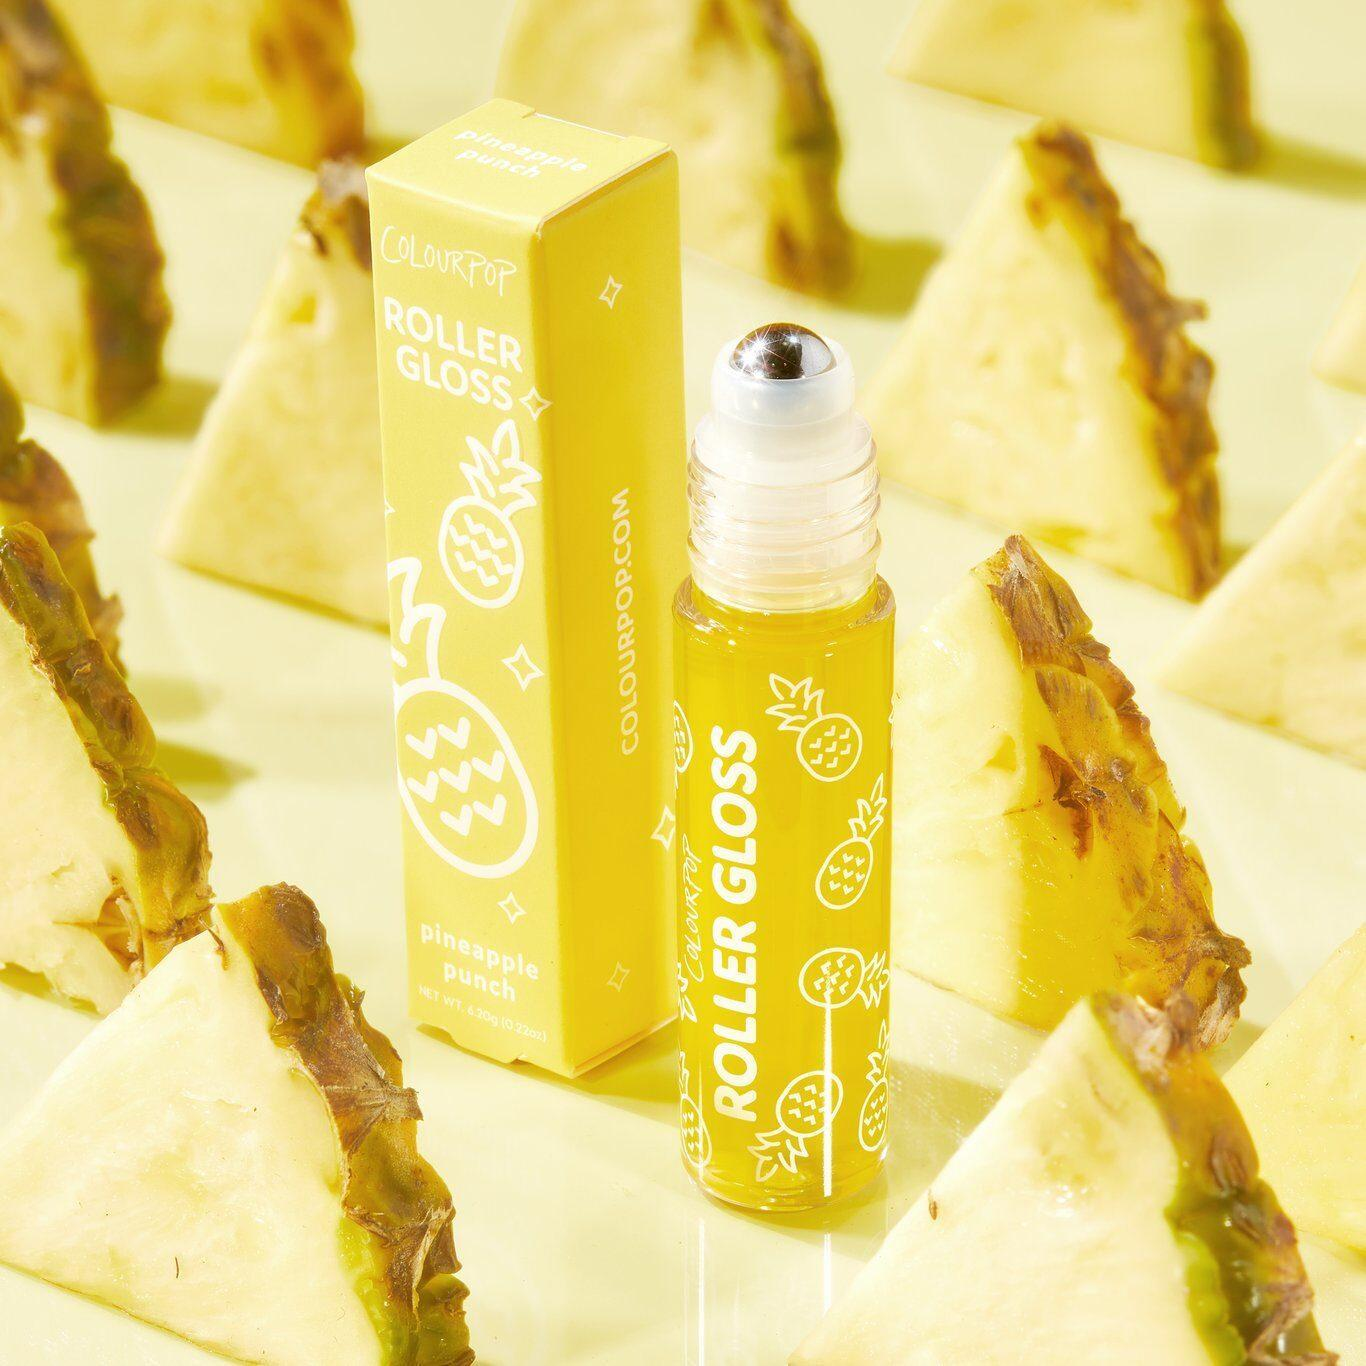 Colourpop Roll With It Roller Gloss Kit In Pineapple Promo